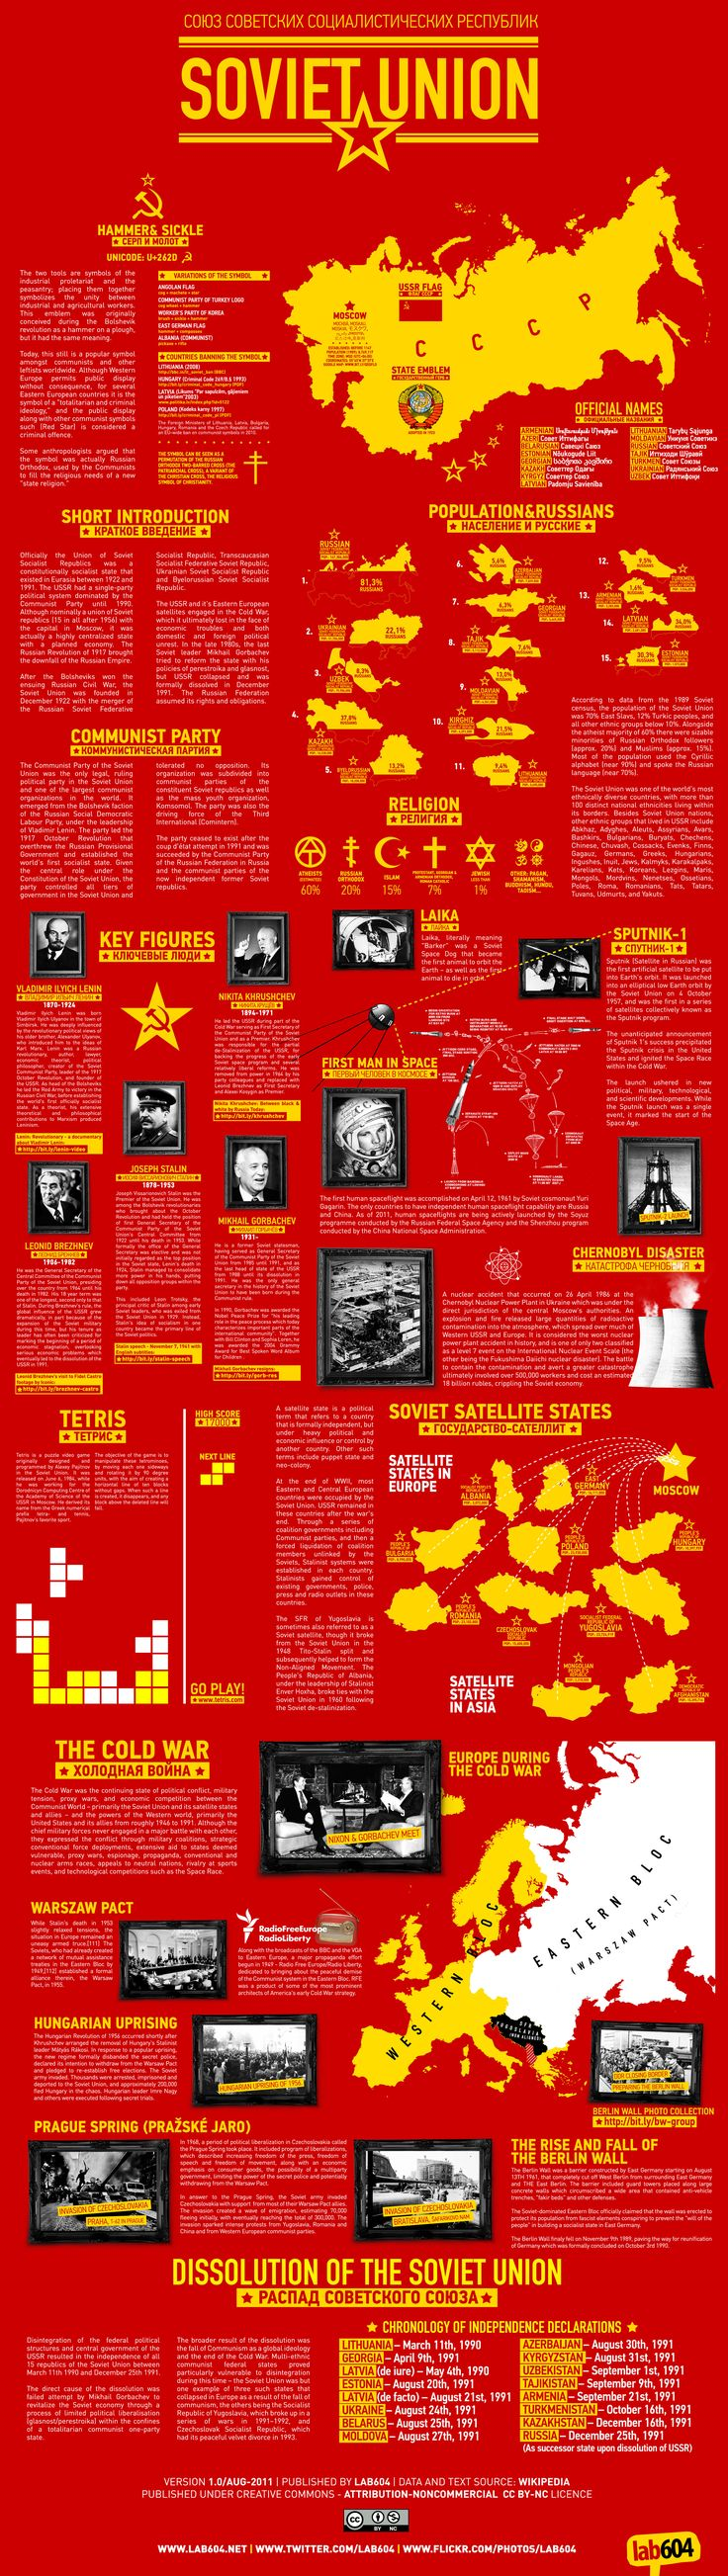 Key facts, history, people and culture of USSR or the Soviet Union, uprisings in Eastern Europe and the dissolution of Union.